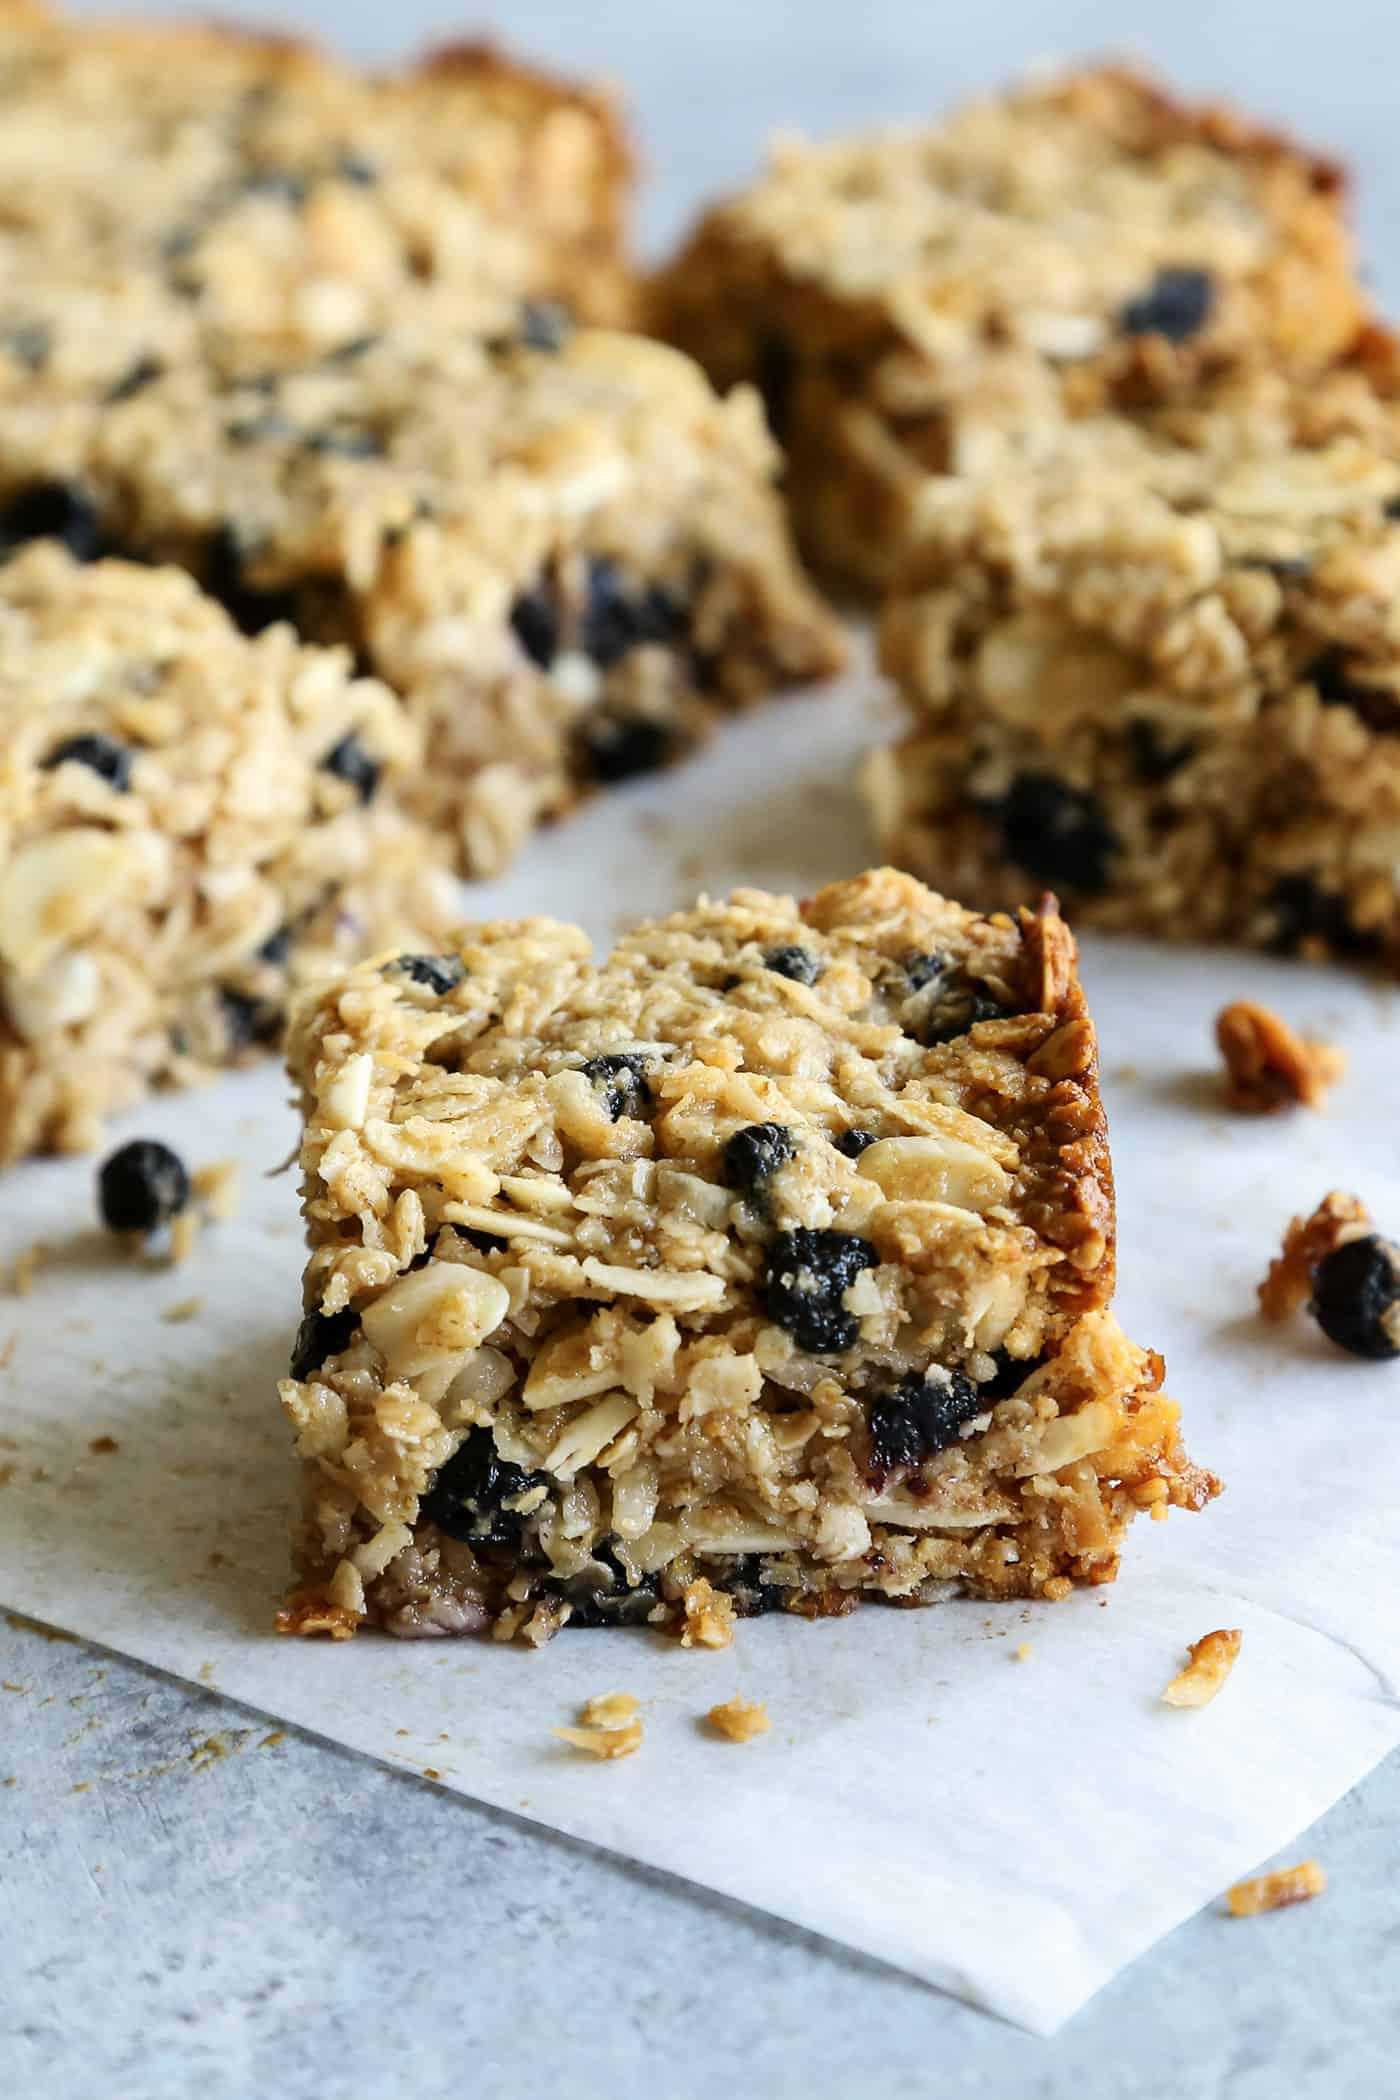 A granola square with almonds and berries